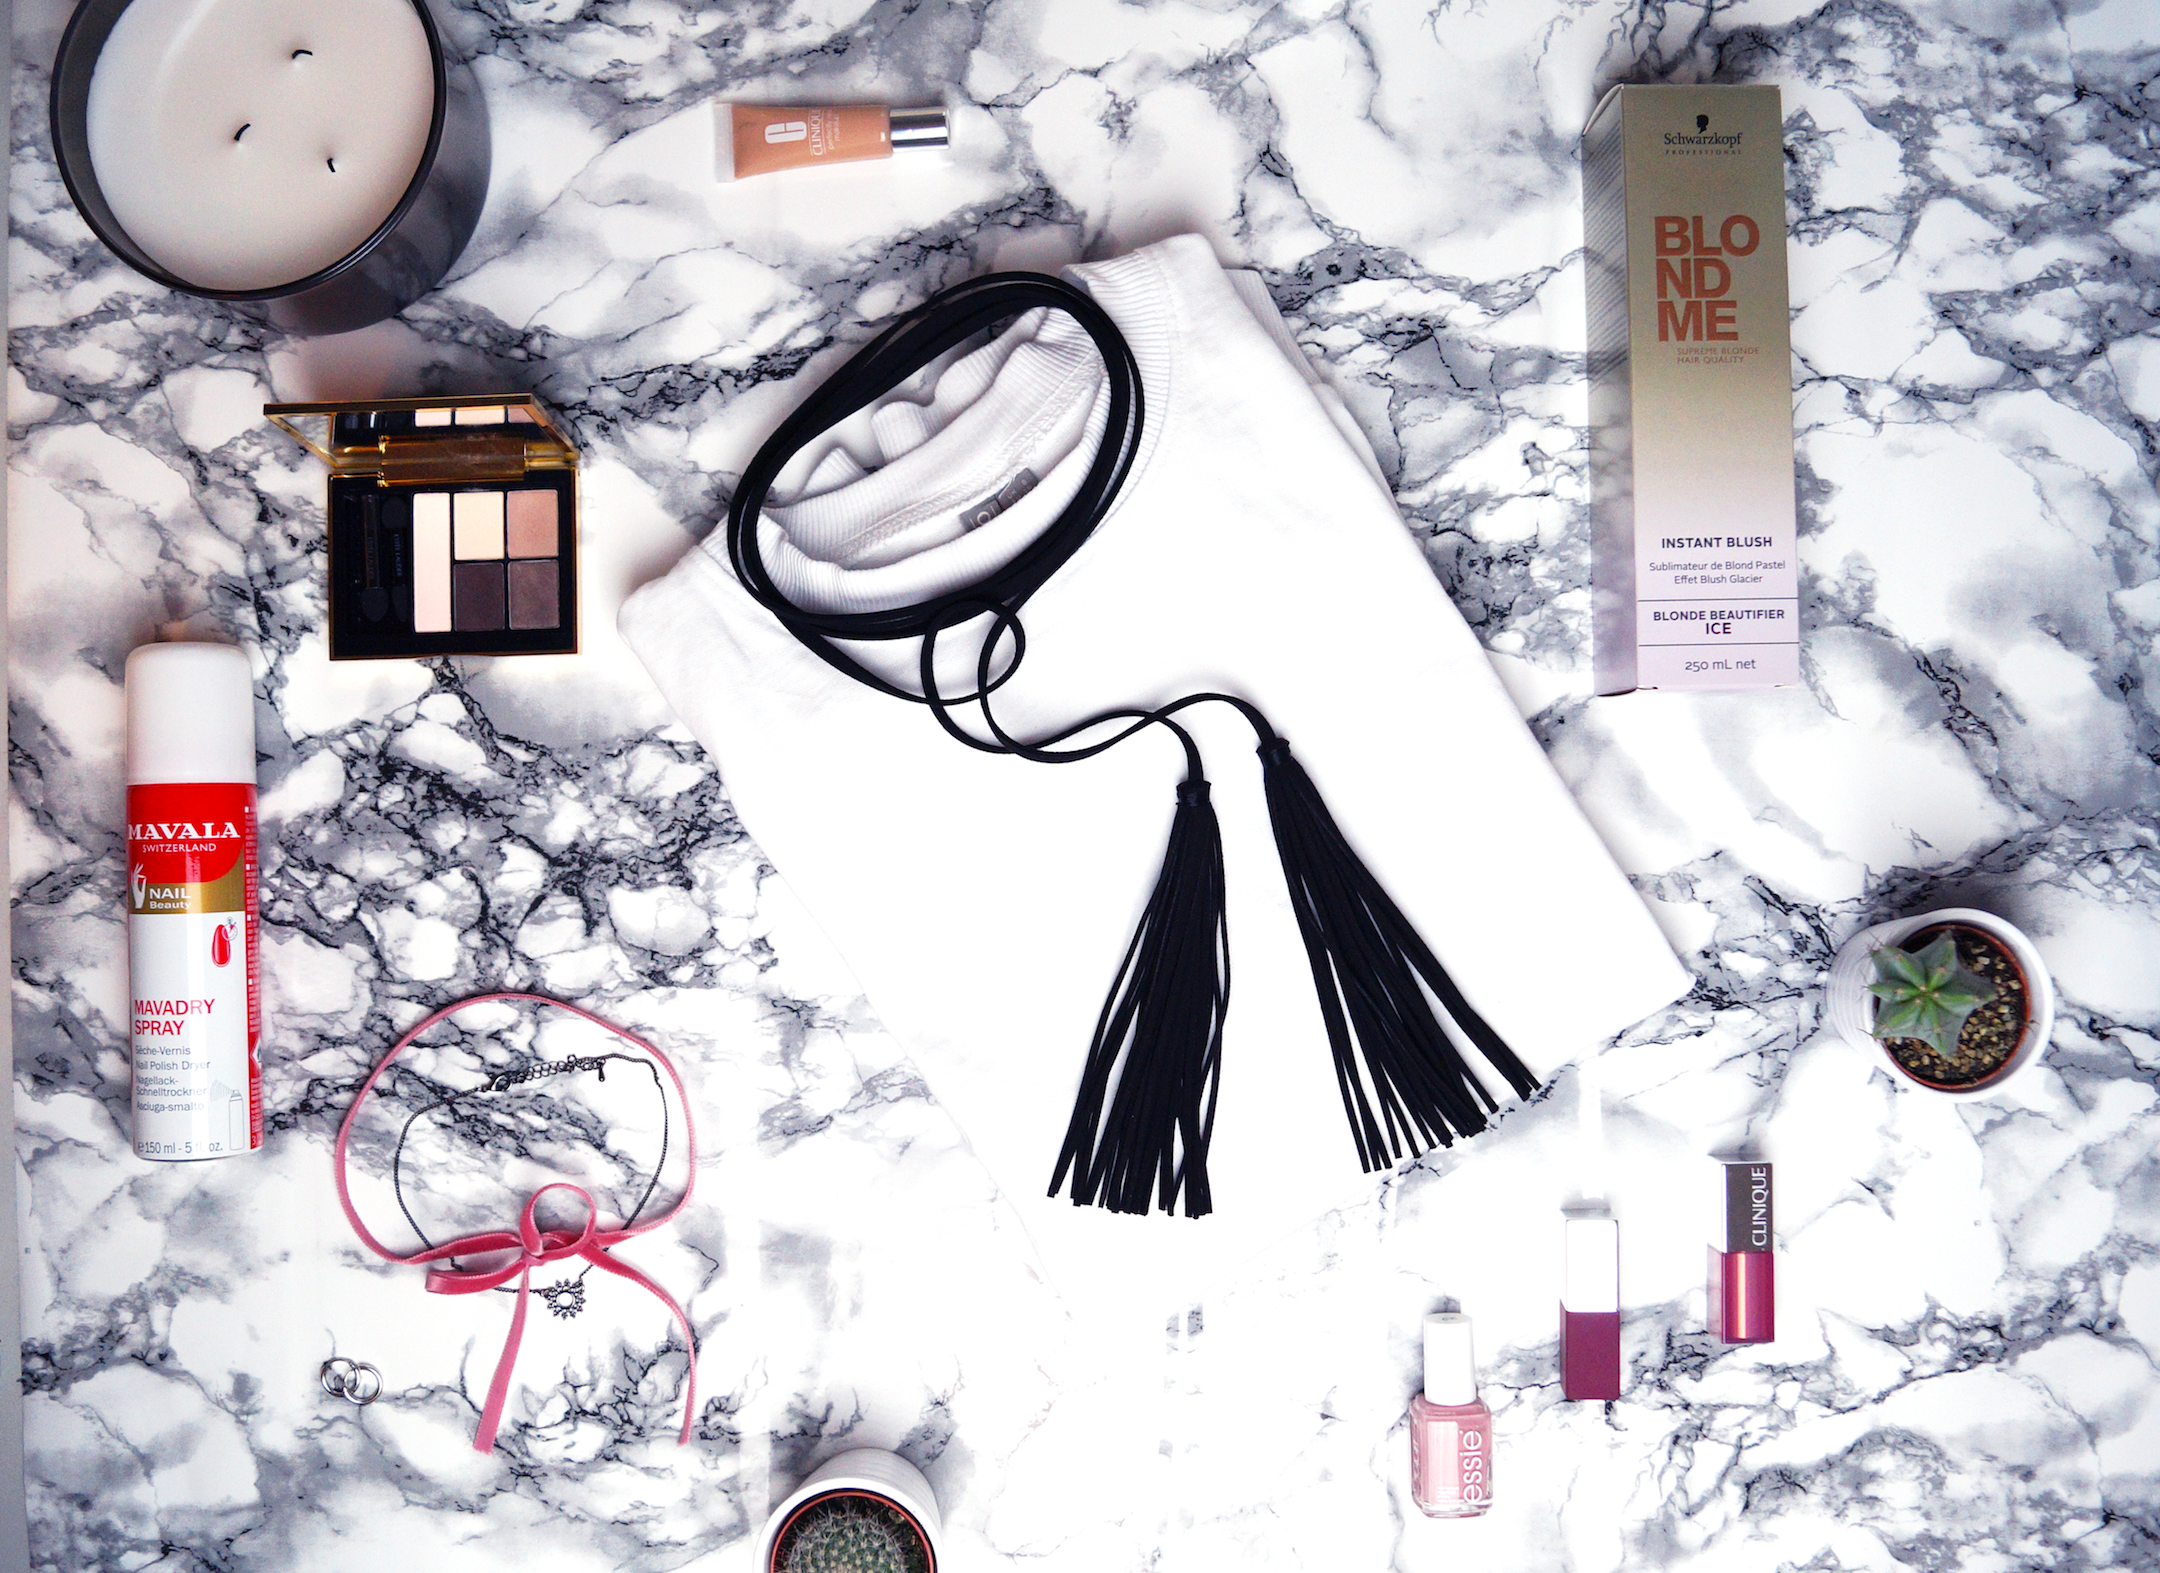 Makeup, Flowers and an ASOS delivery  #Haul